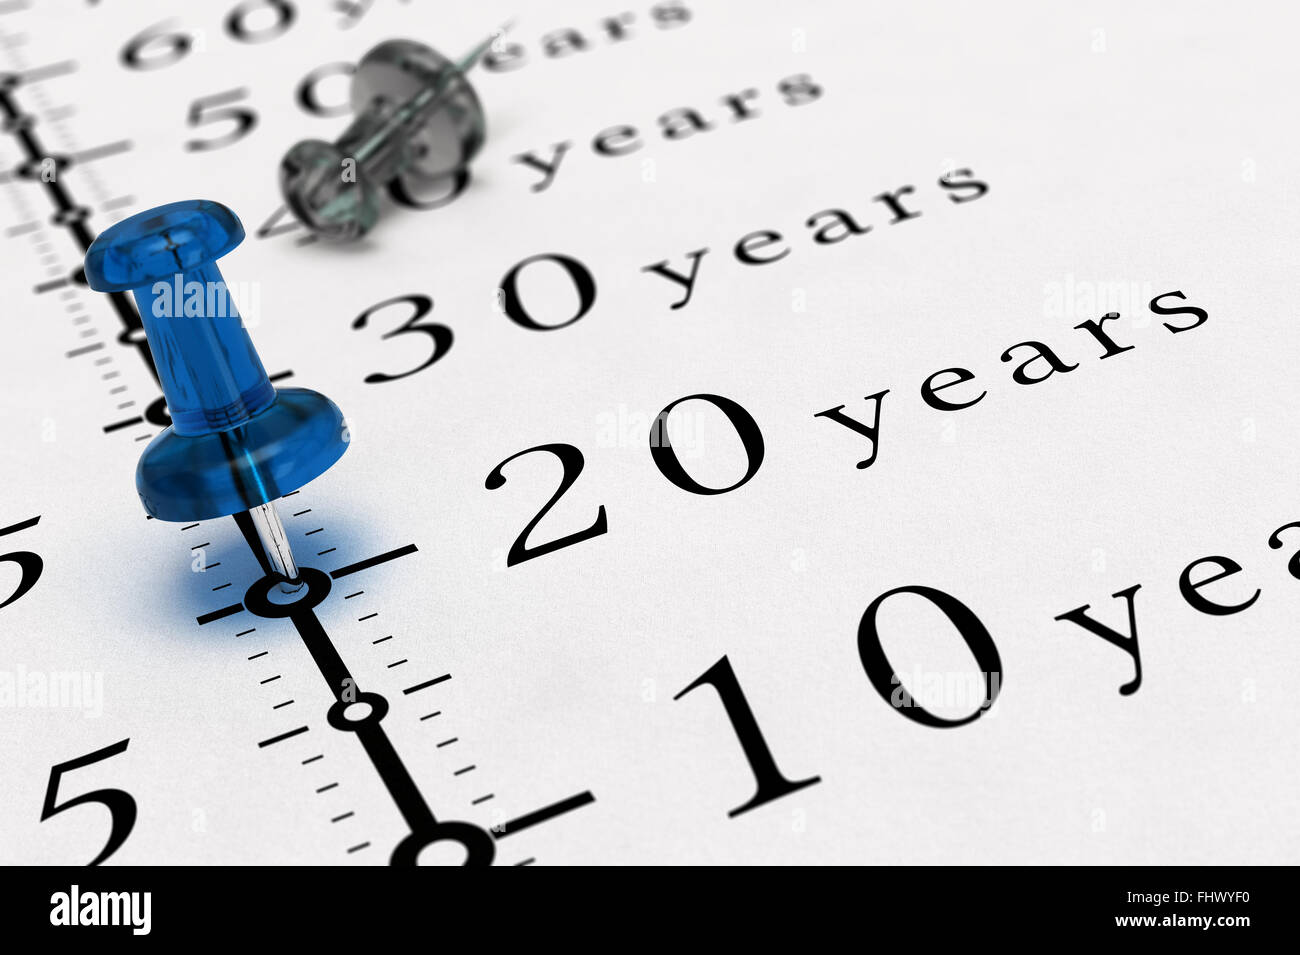 20 years written on a paper with a blue pushpin, concept image for business vision or long term prospective. Number - Stock Image